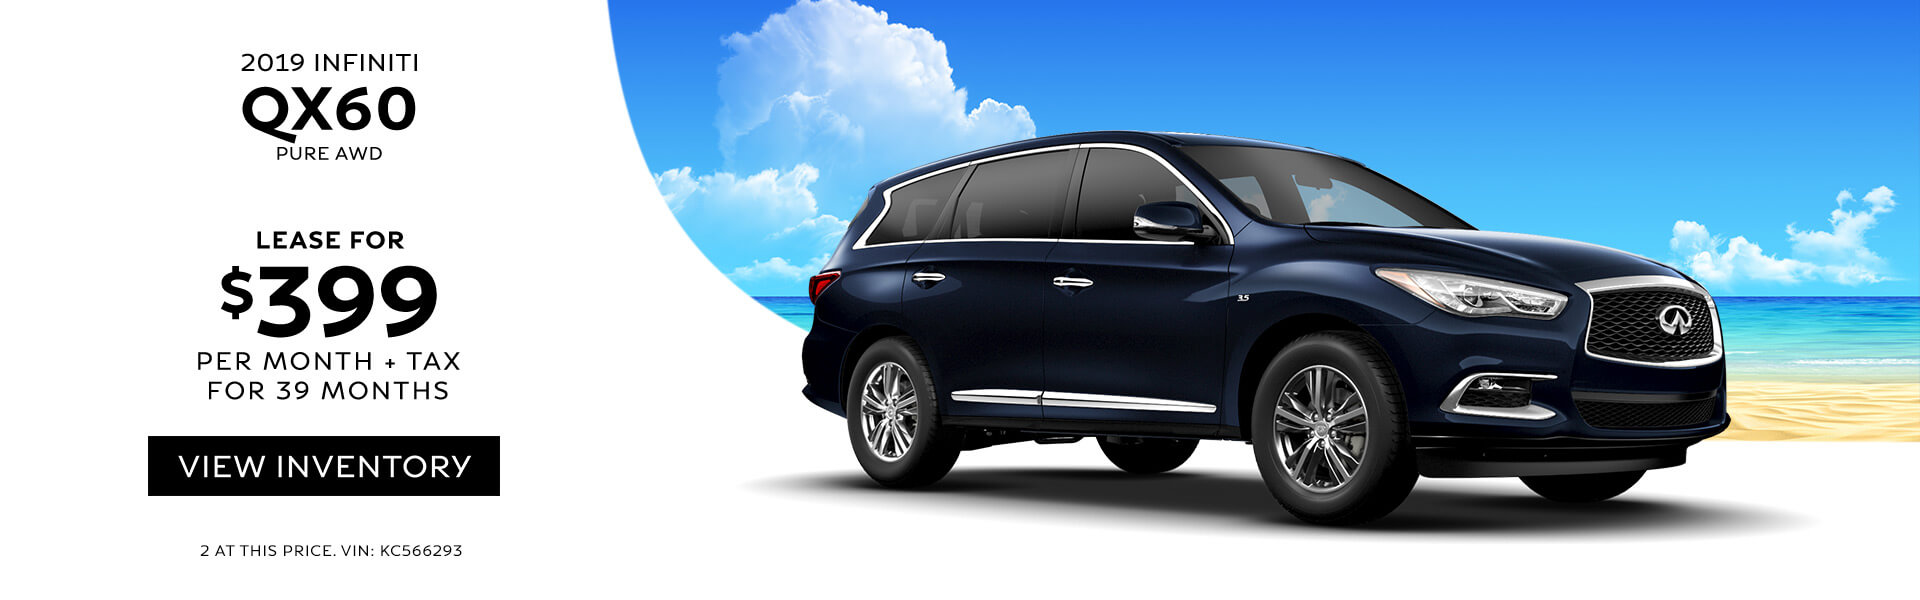 QX60 Lease for 399